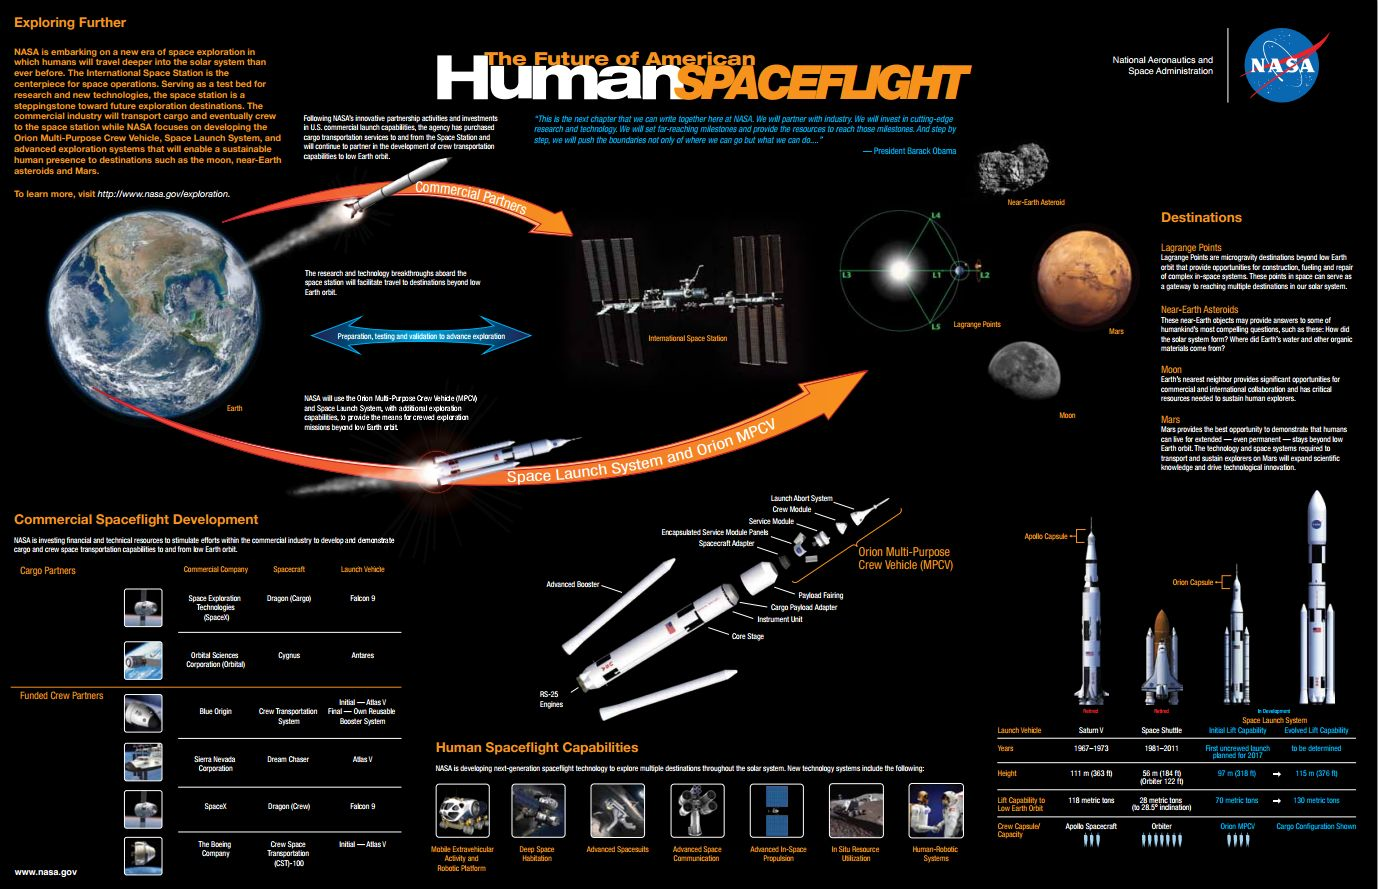 Nasa 39 s picture of the future of human spaceflight for Space exploration